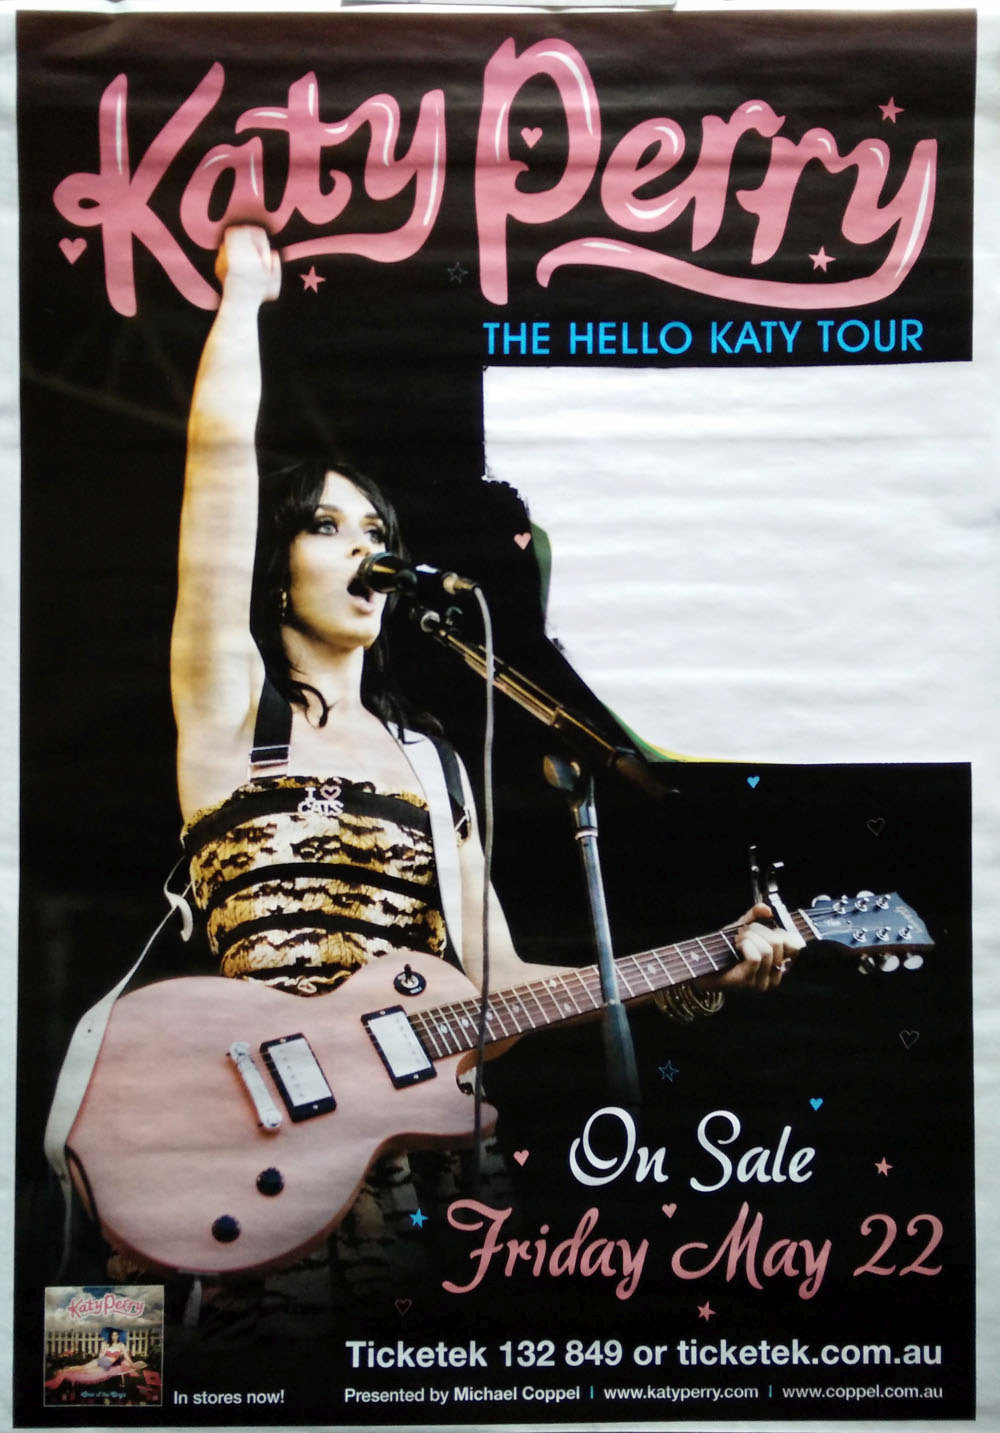 Perry Katy The Hello Katy Tour Poster 2009 Billboard